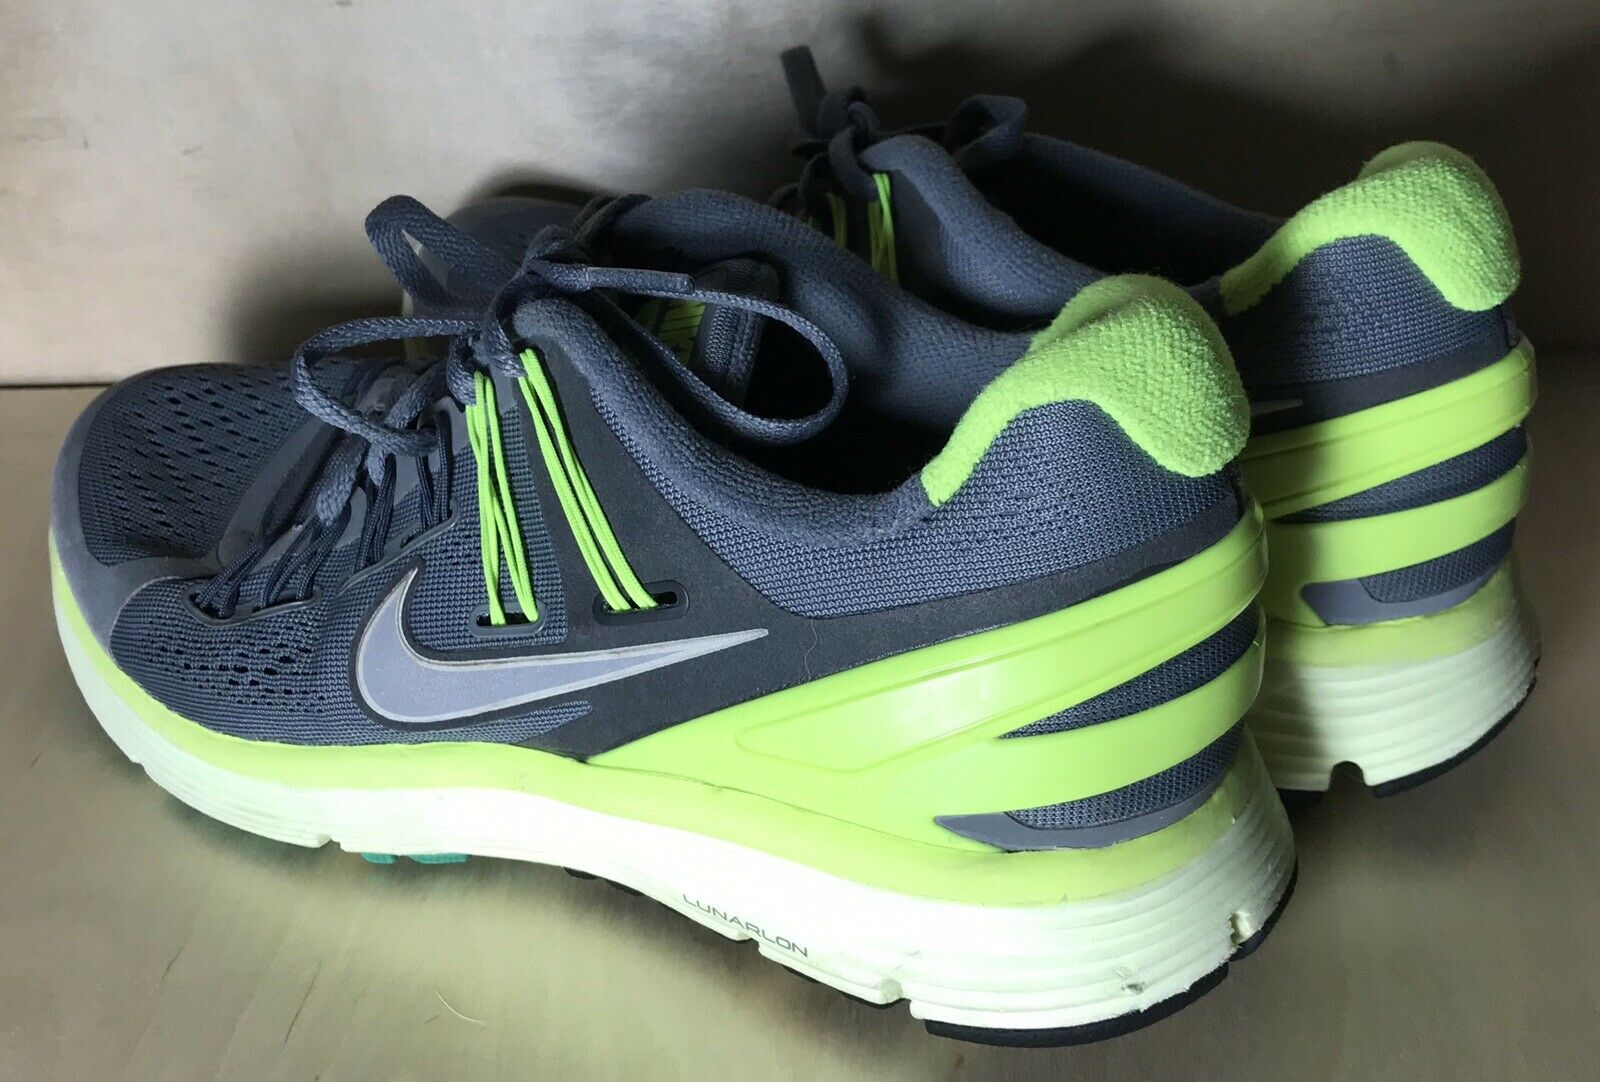 Womens Nike shoes Grey Green Size 7.5 Preowned Preowned Preowned Sneakers 1665a6